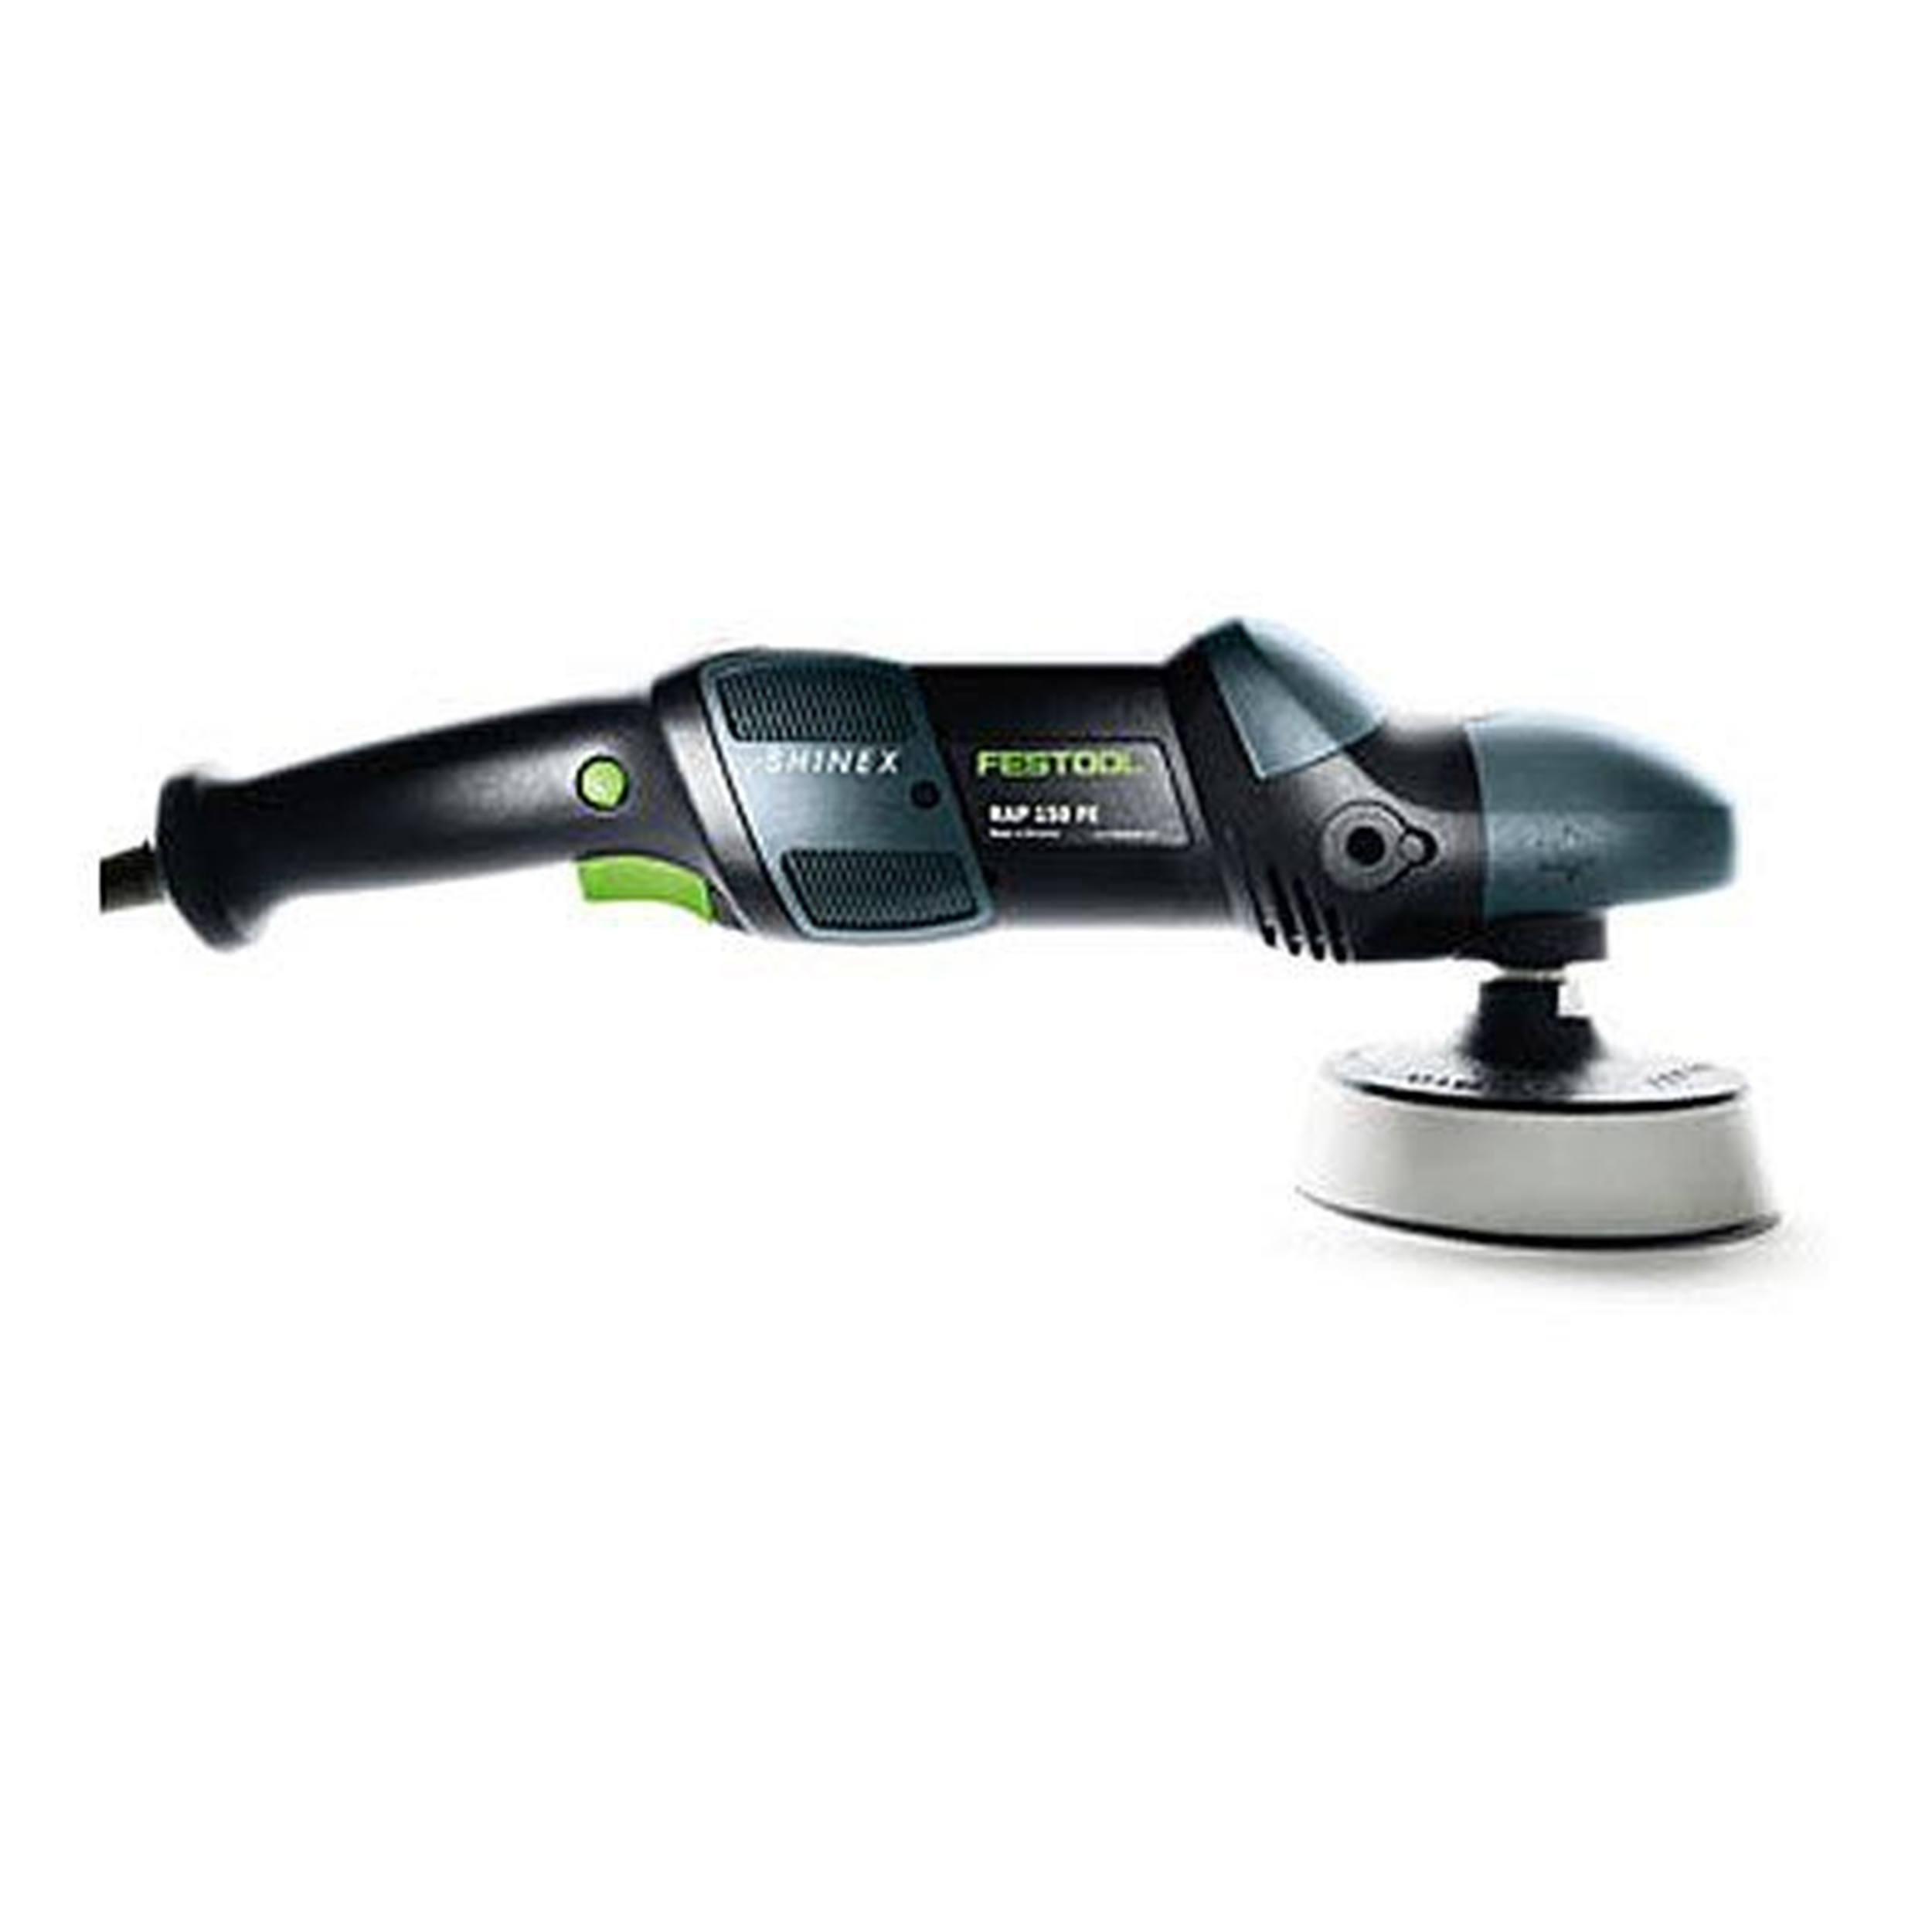 Festool Rotary Polisher, RAP 150-21 FE by Festool Tooltechnic Systems LLC